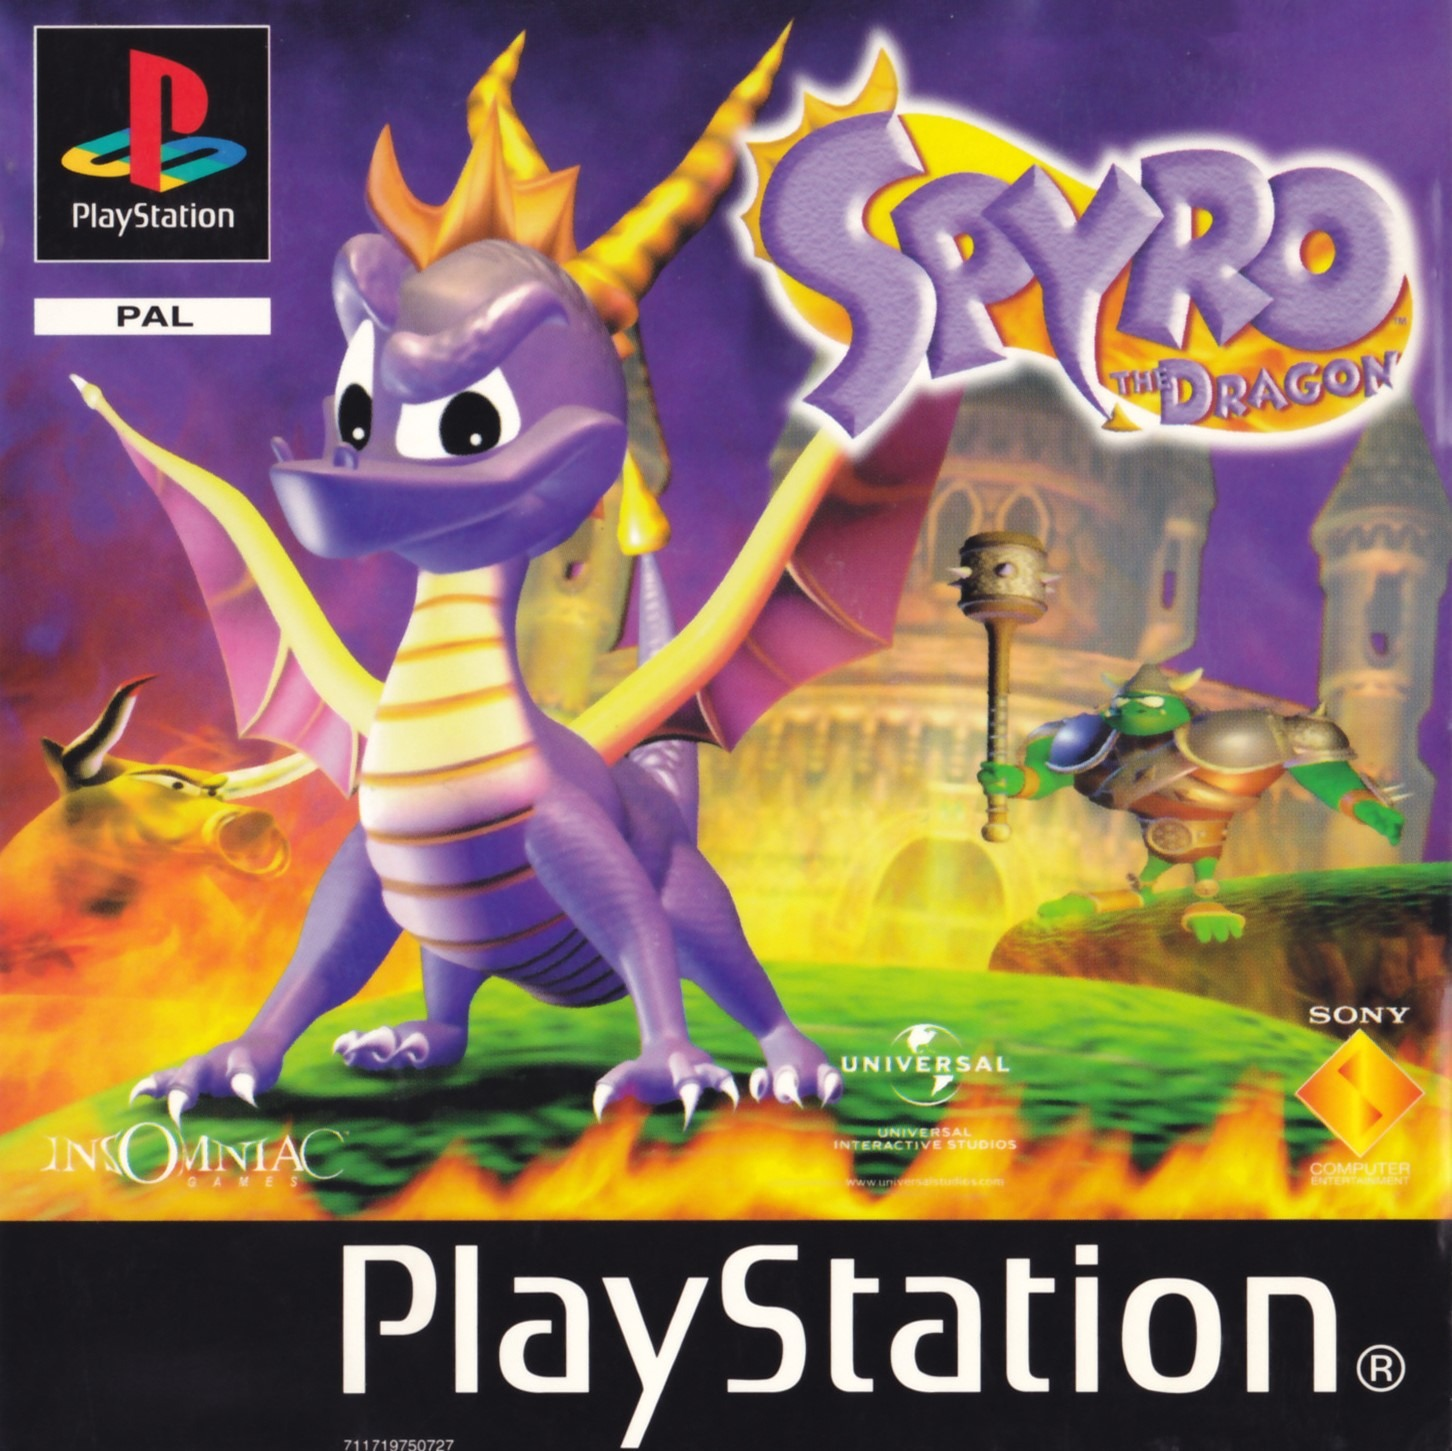 Spyro the Dragon Rom